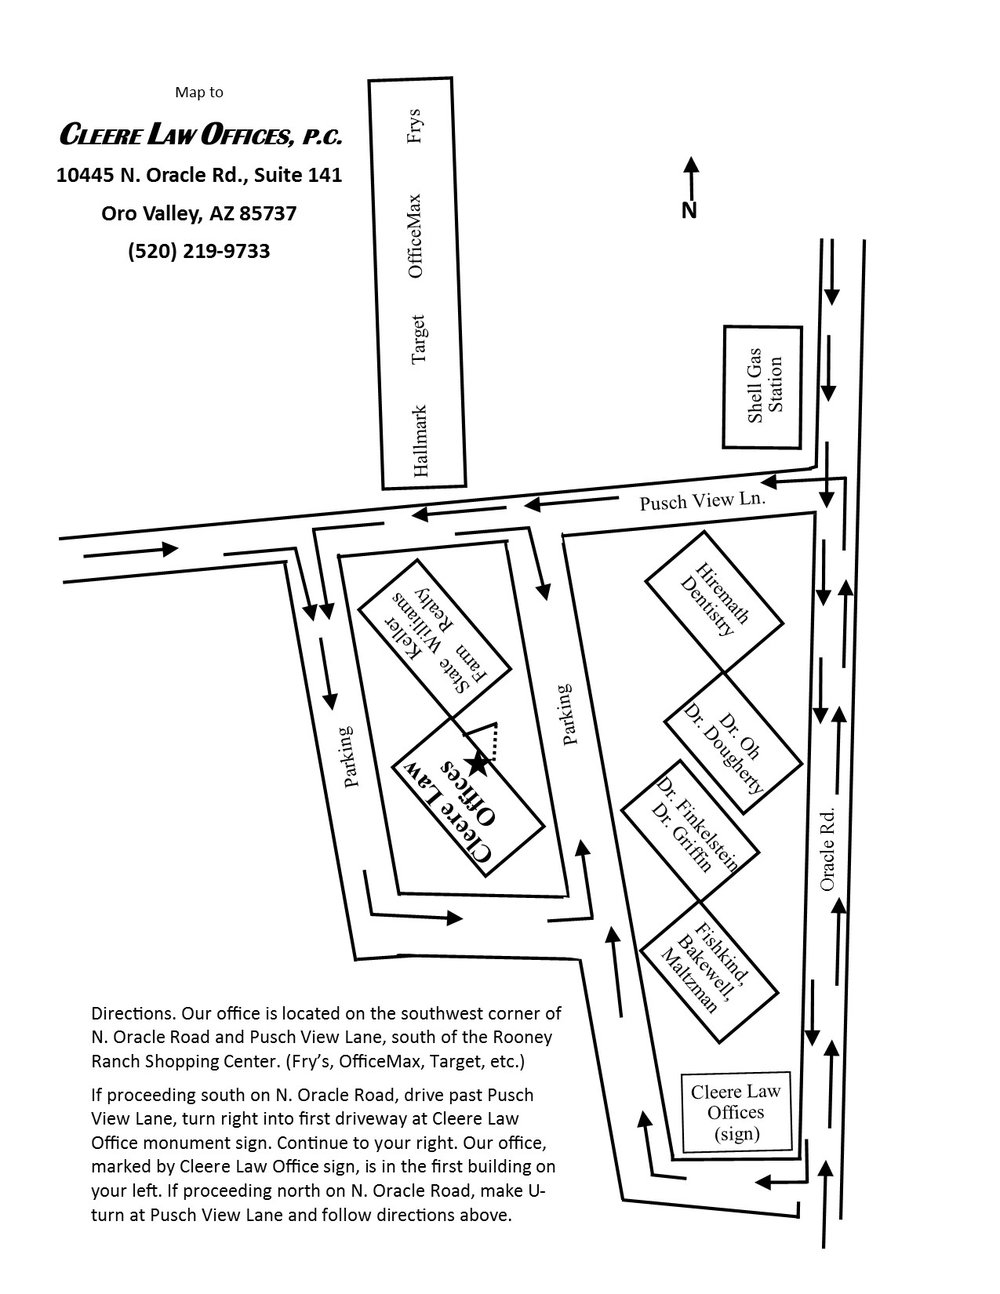 Map of Cleere Law Offices, Oro Valley, Arizona